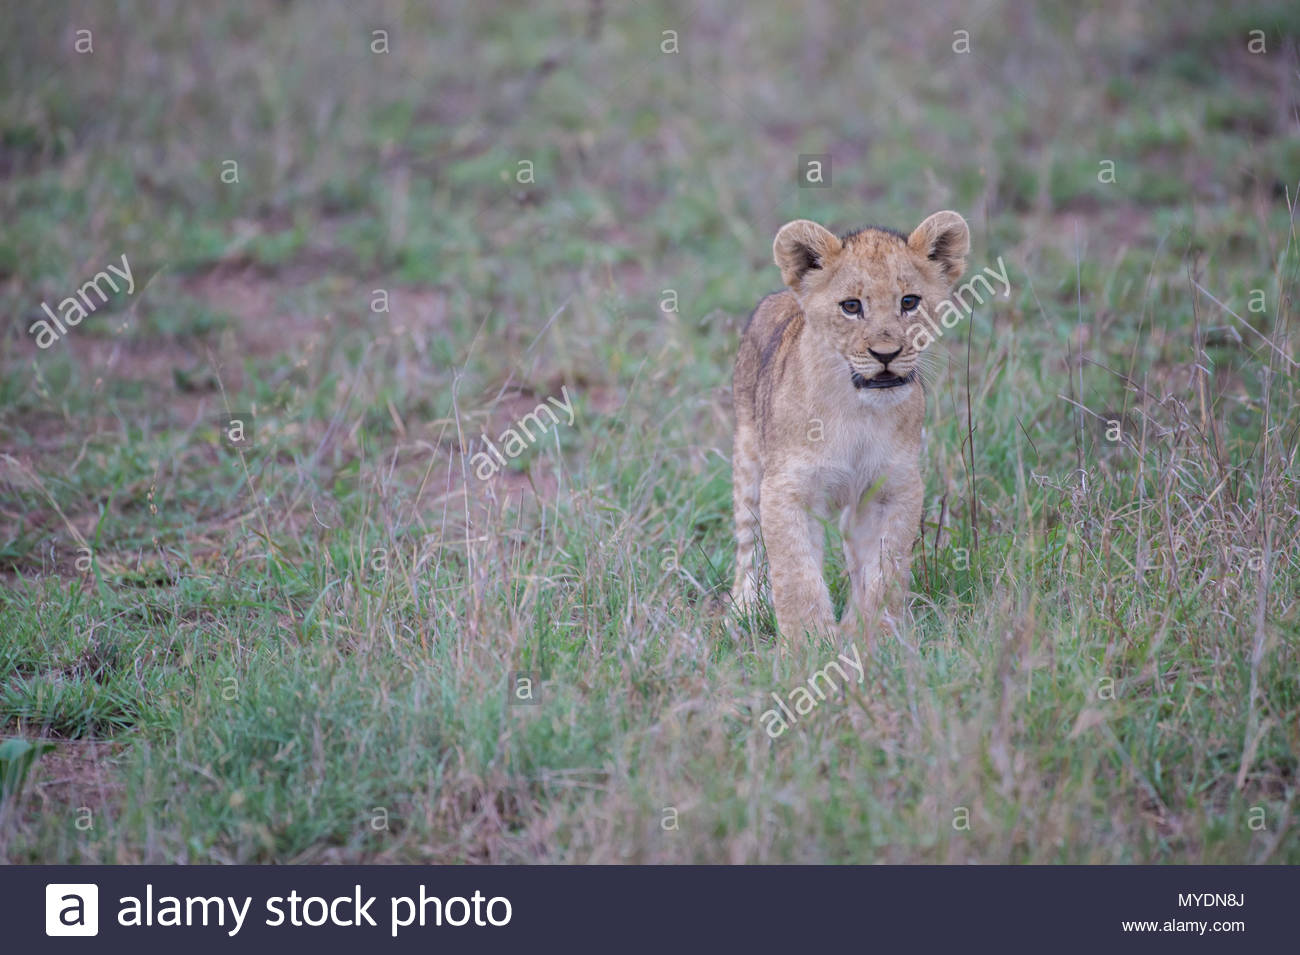 A lion cub in the grass. - Stock Image